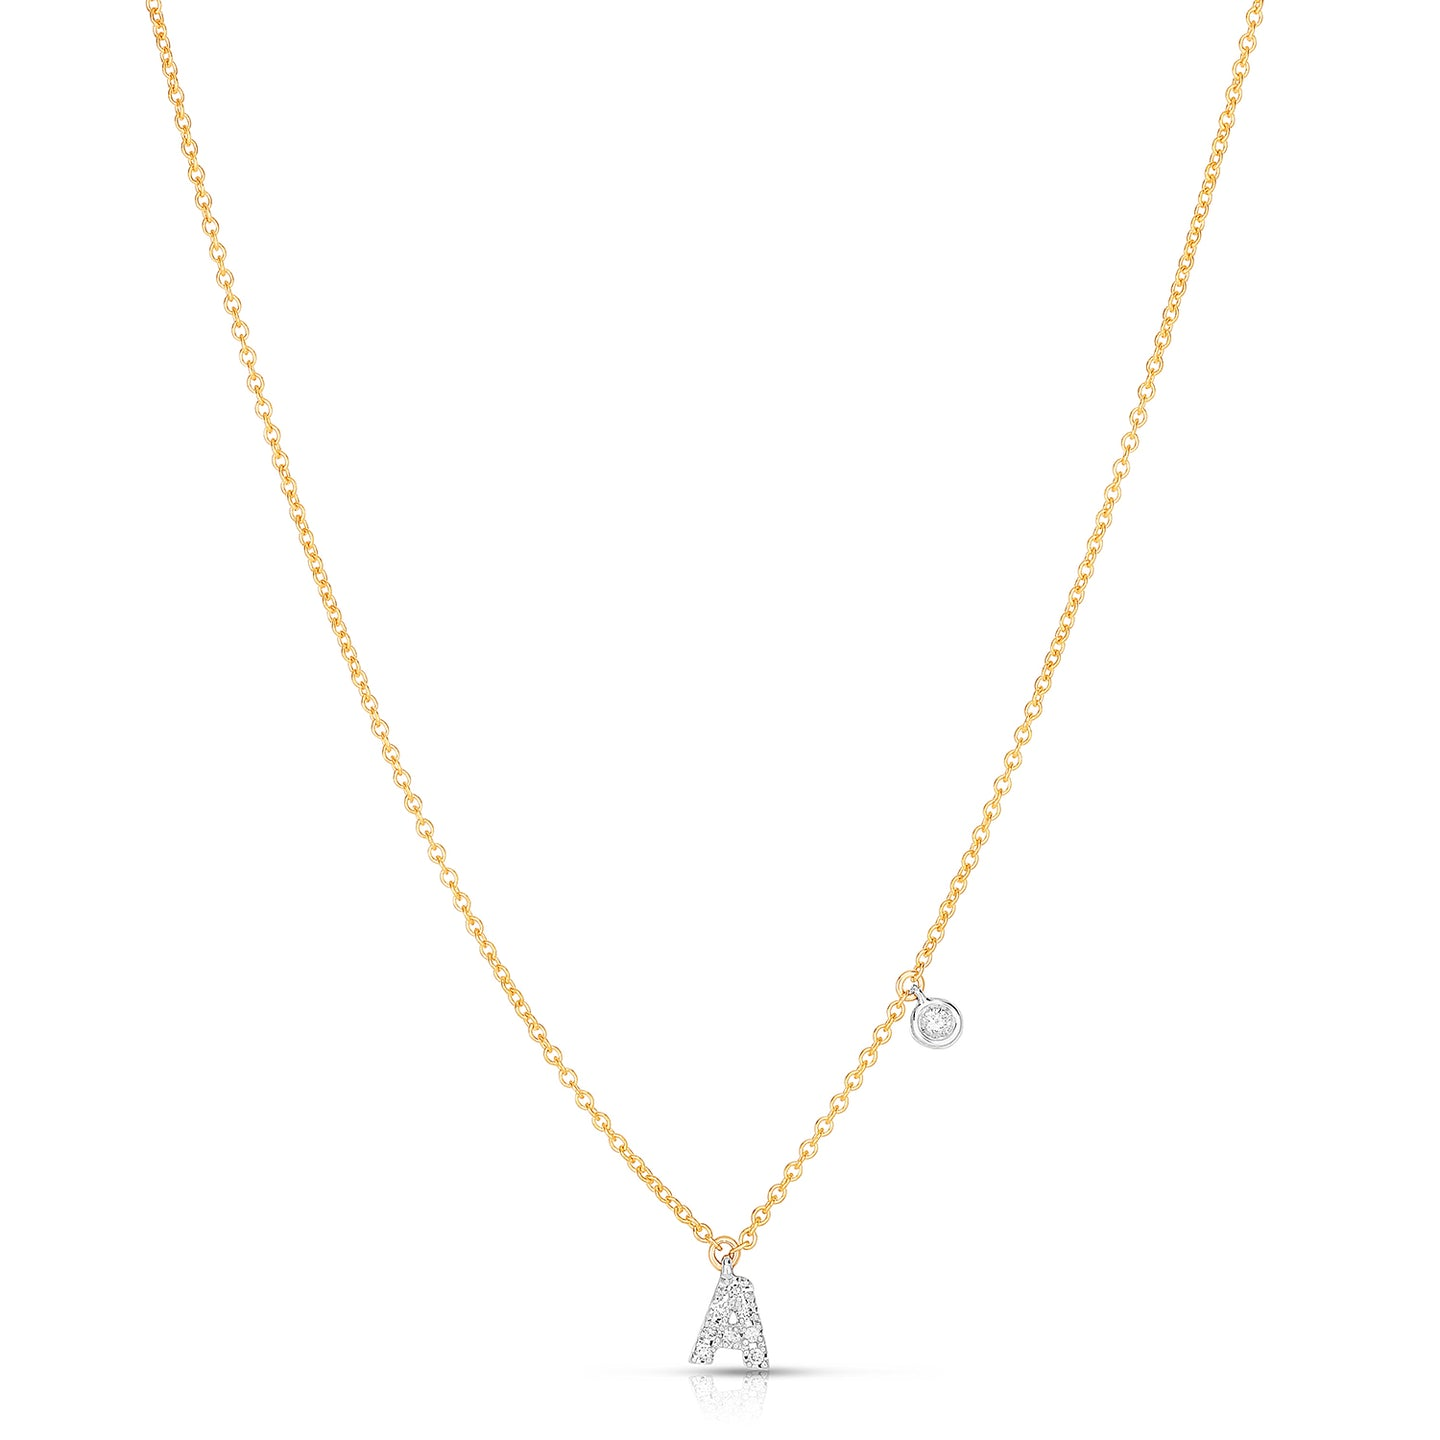 Sabel Collection 14K Yellow and White Gold Diamond Miniature Initial Pendant Necklace